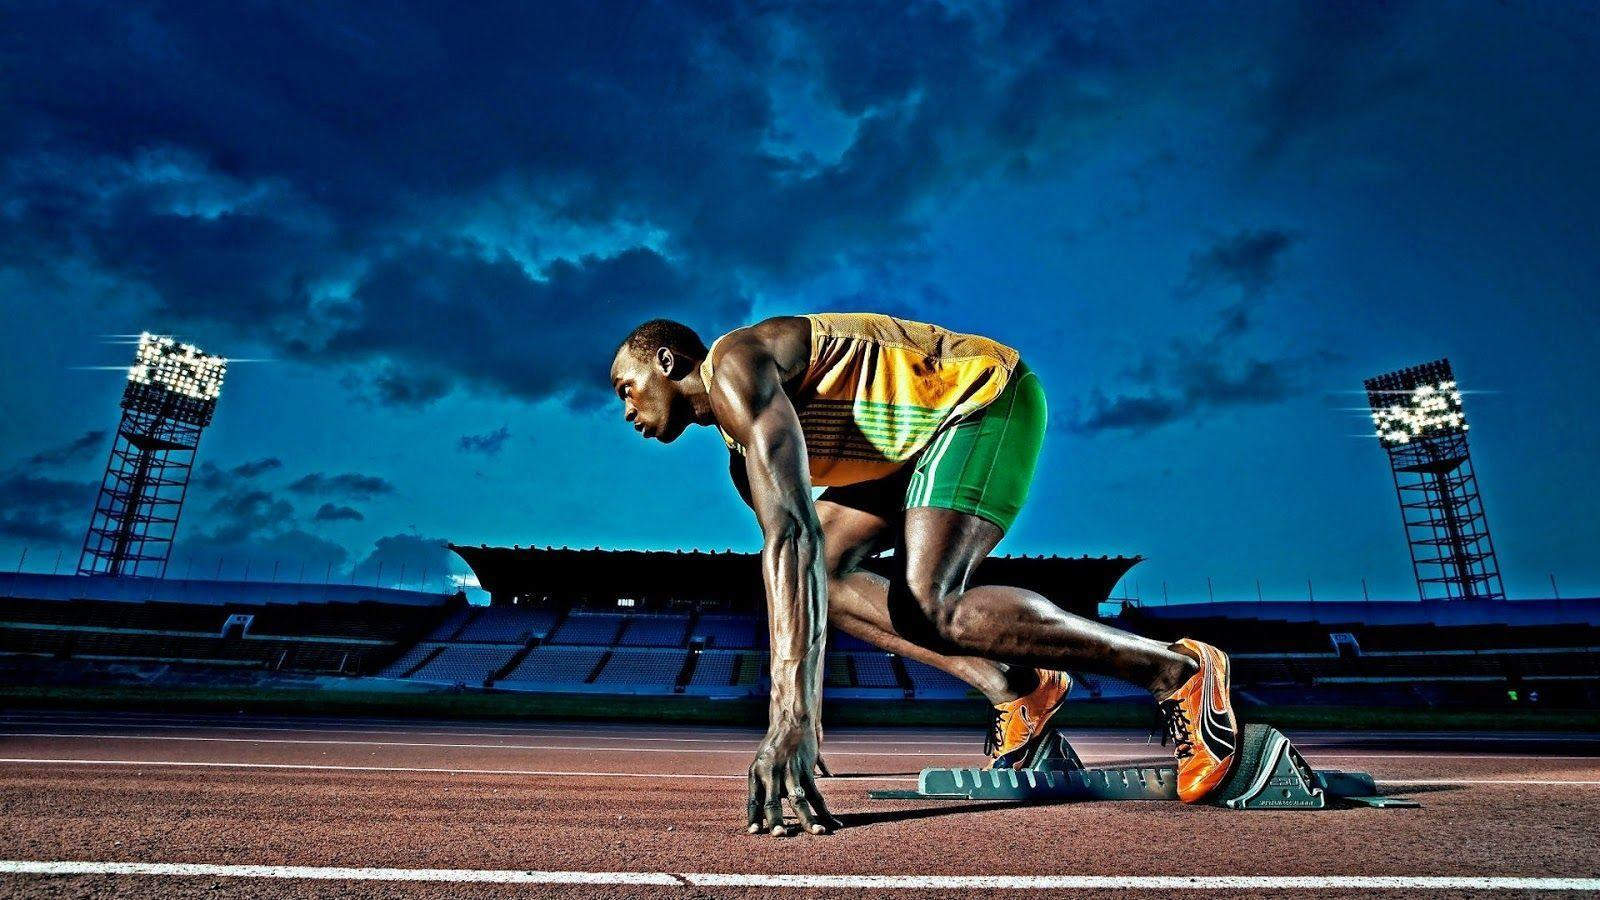 sports wallpapers hd sport background bolt running usain athletics athlete sprinter run awesome motivational race atletismo amazing track runner que